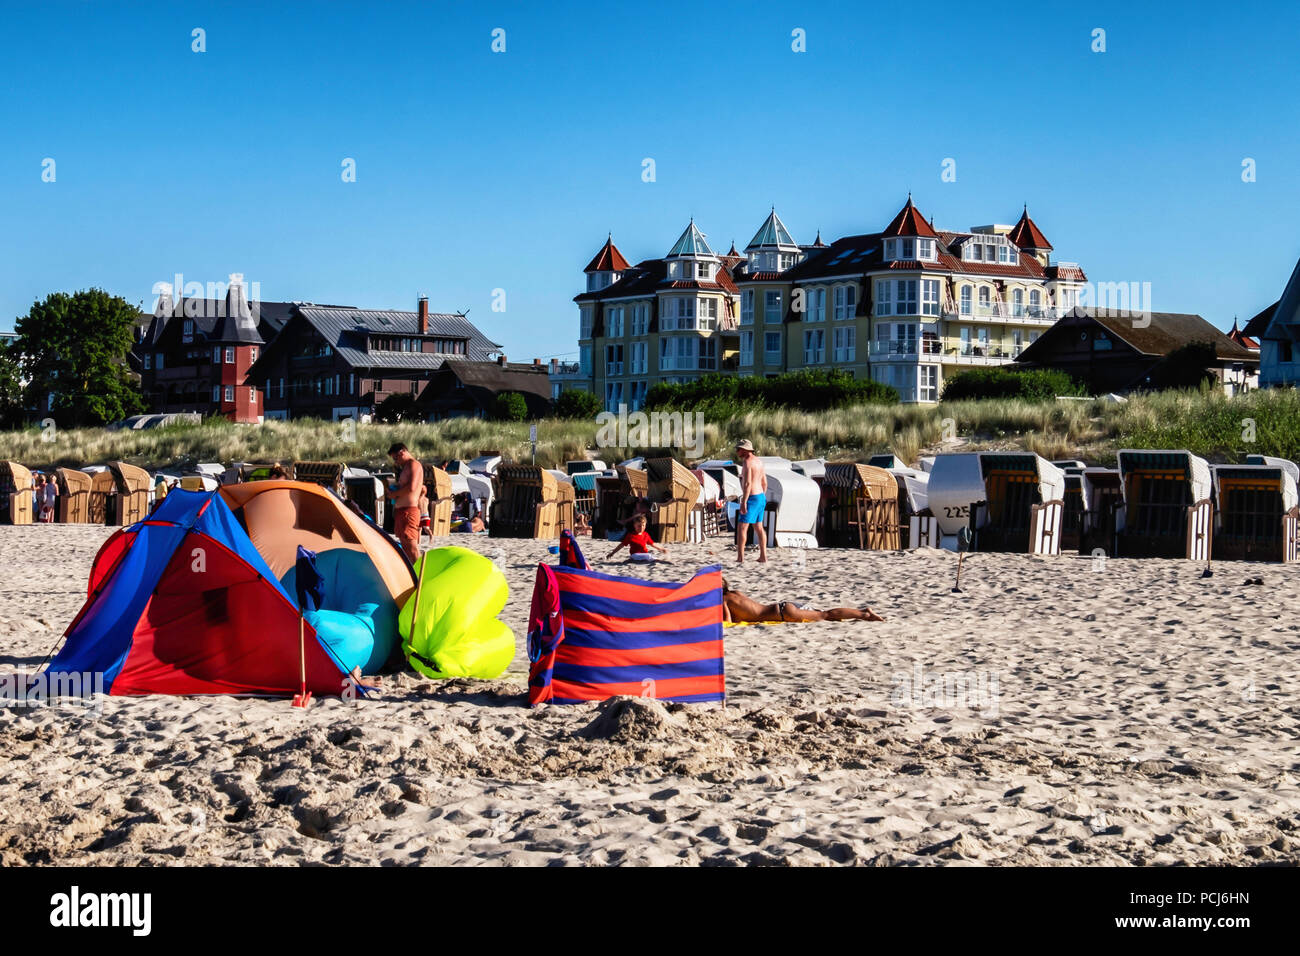 Beach basket chairs, hotels & and colourful tents on  Bansin Beach. Baltic sea resort on Usedom Island , Heringsdorf, Germany Bansin beach is the west - Stock Image